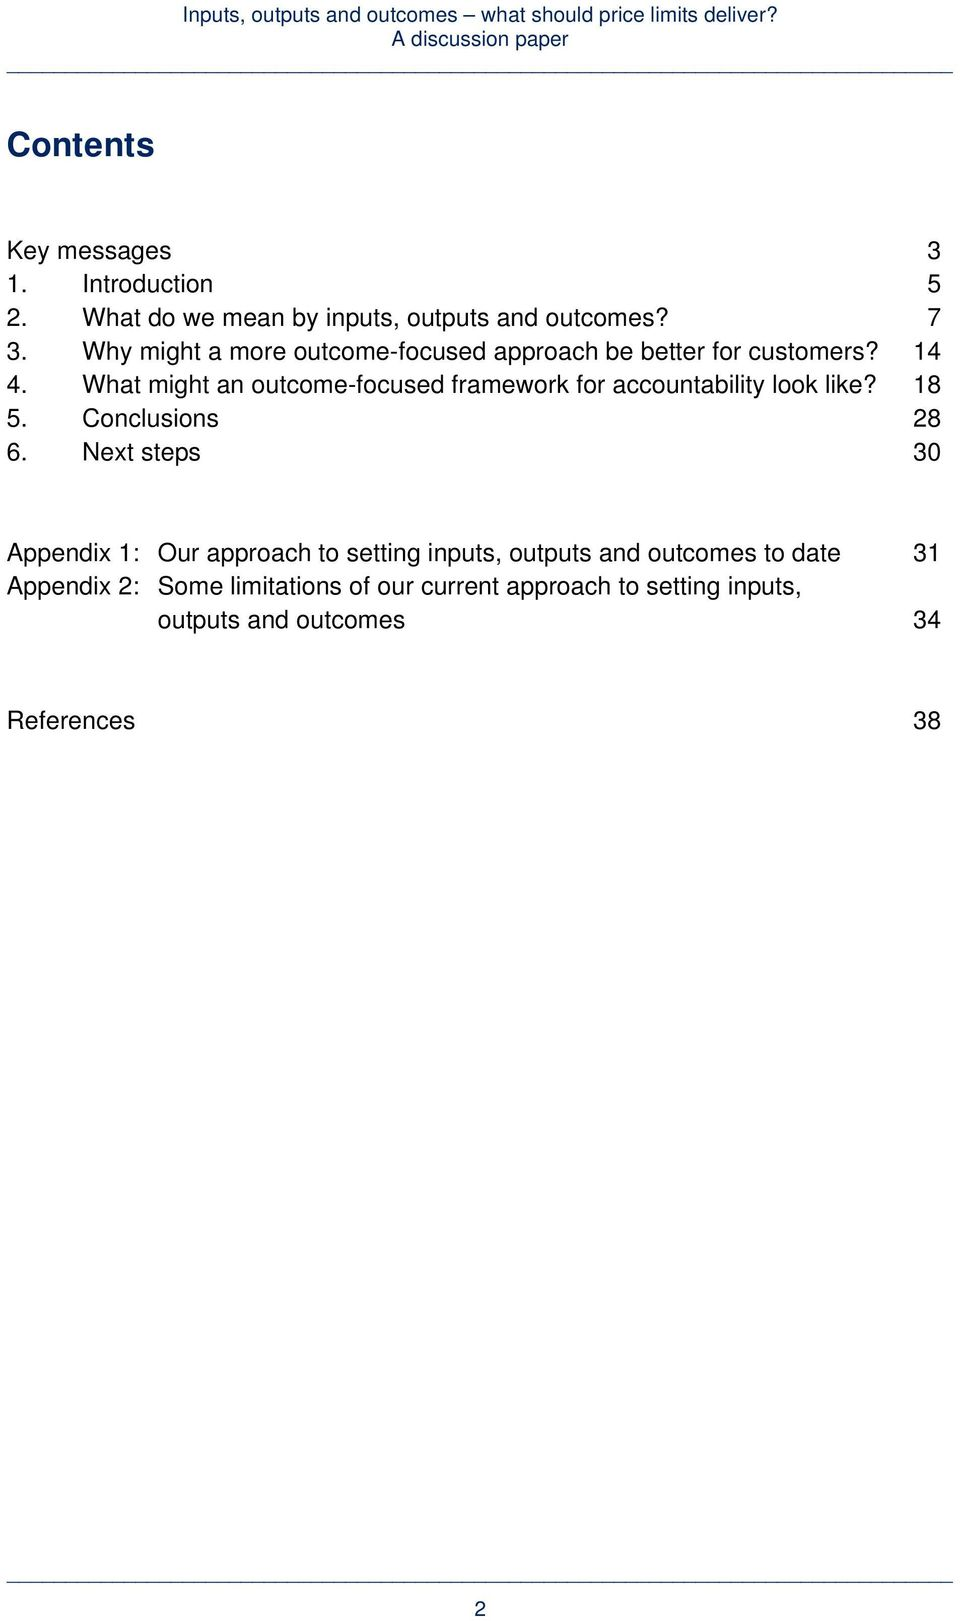 What might an outcome-focused framework for accountability look like? 18 5. Conclusions 28 6.